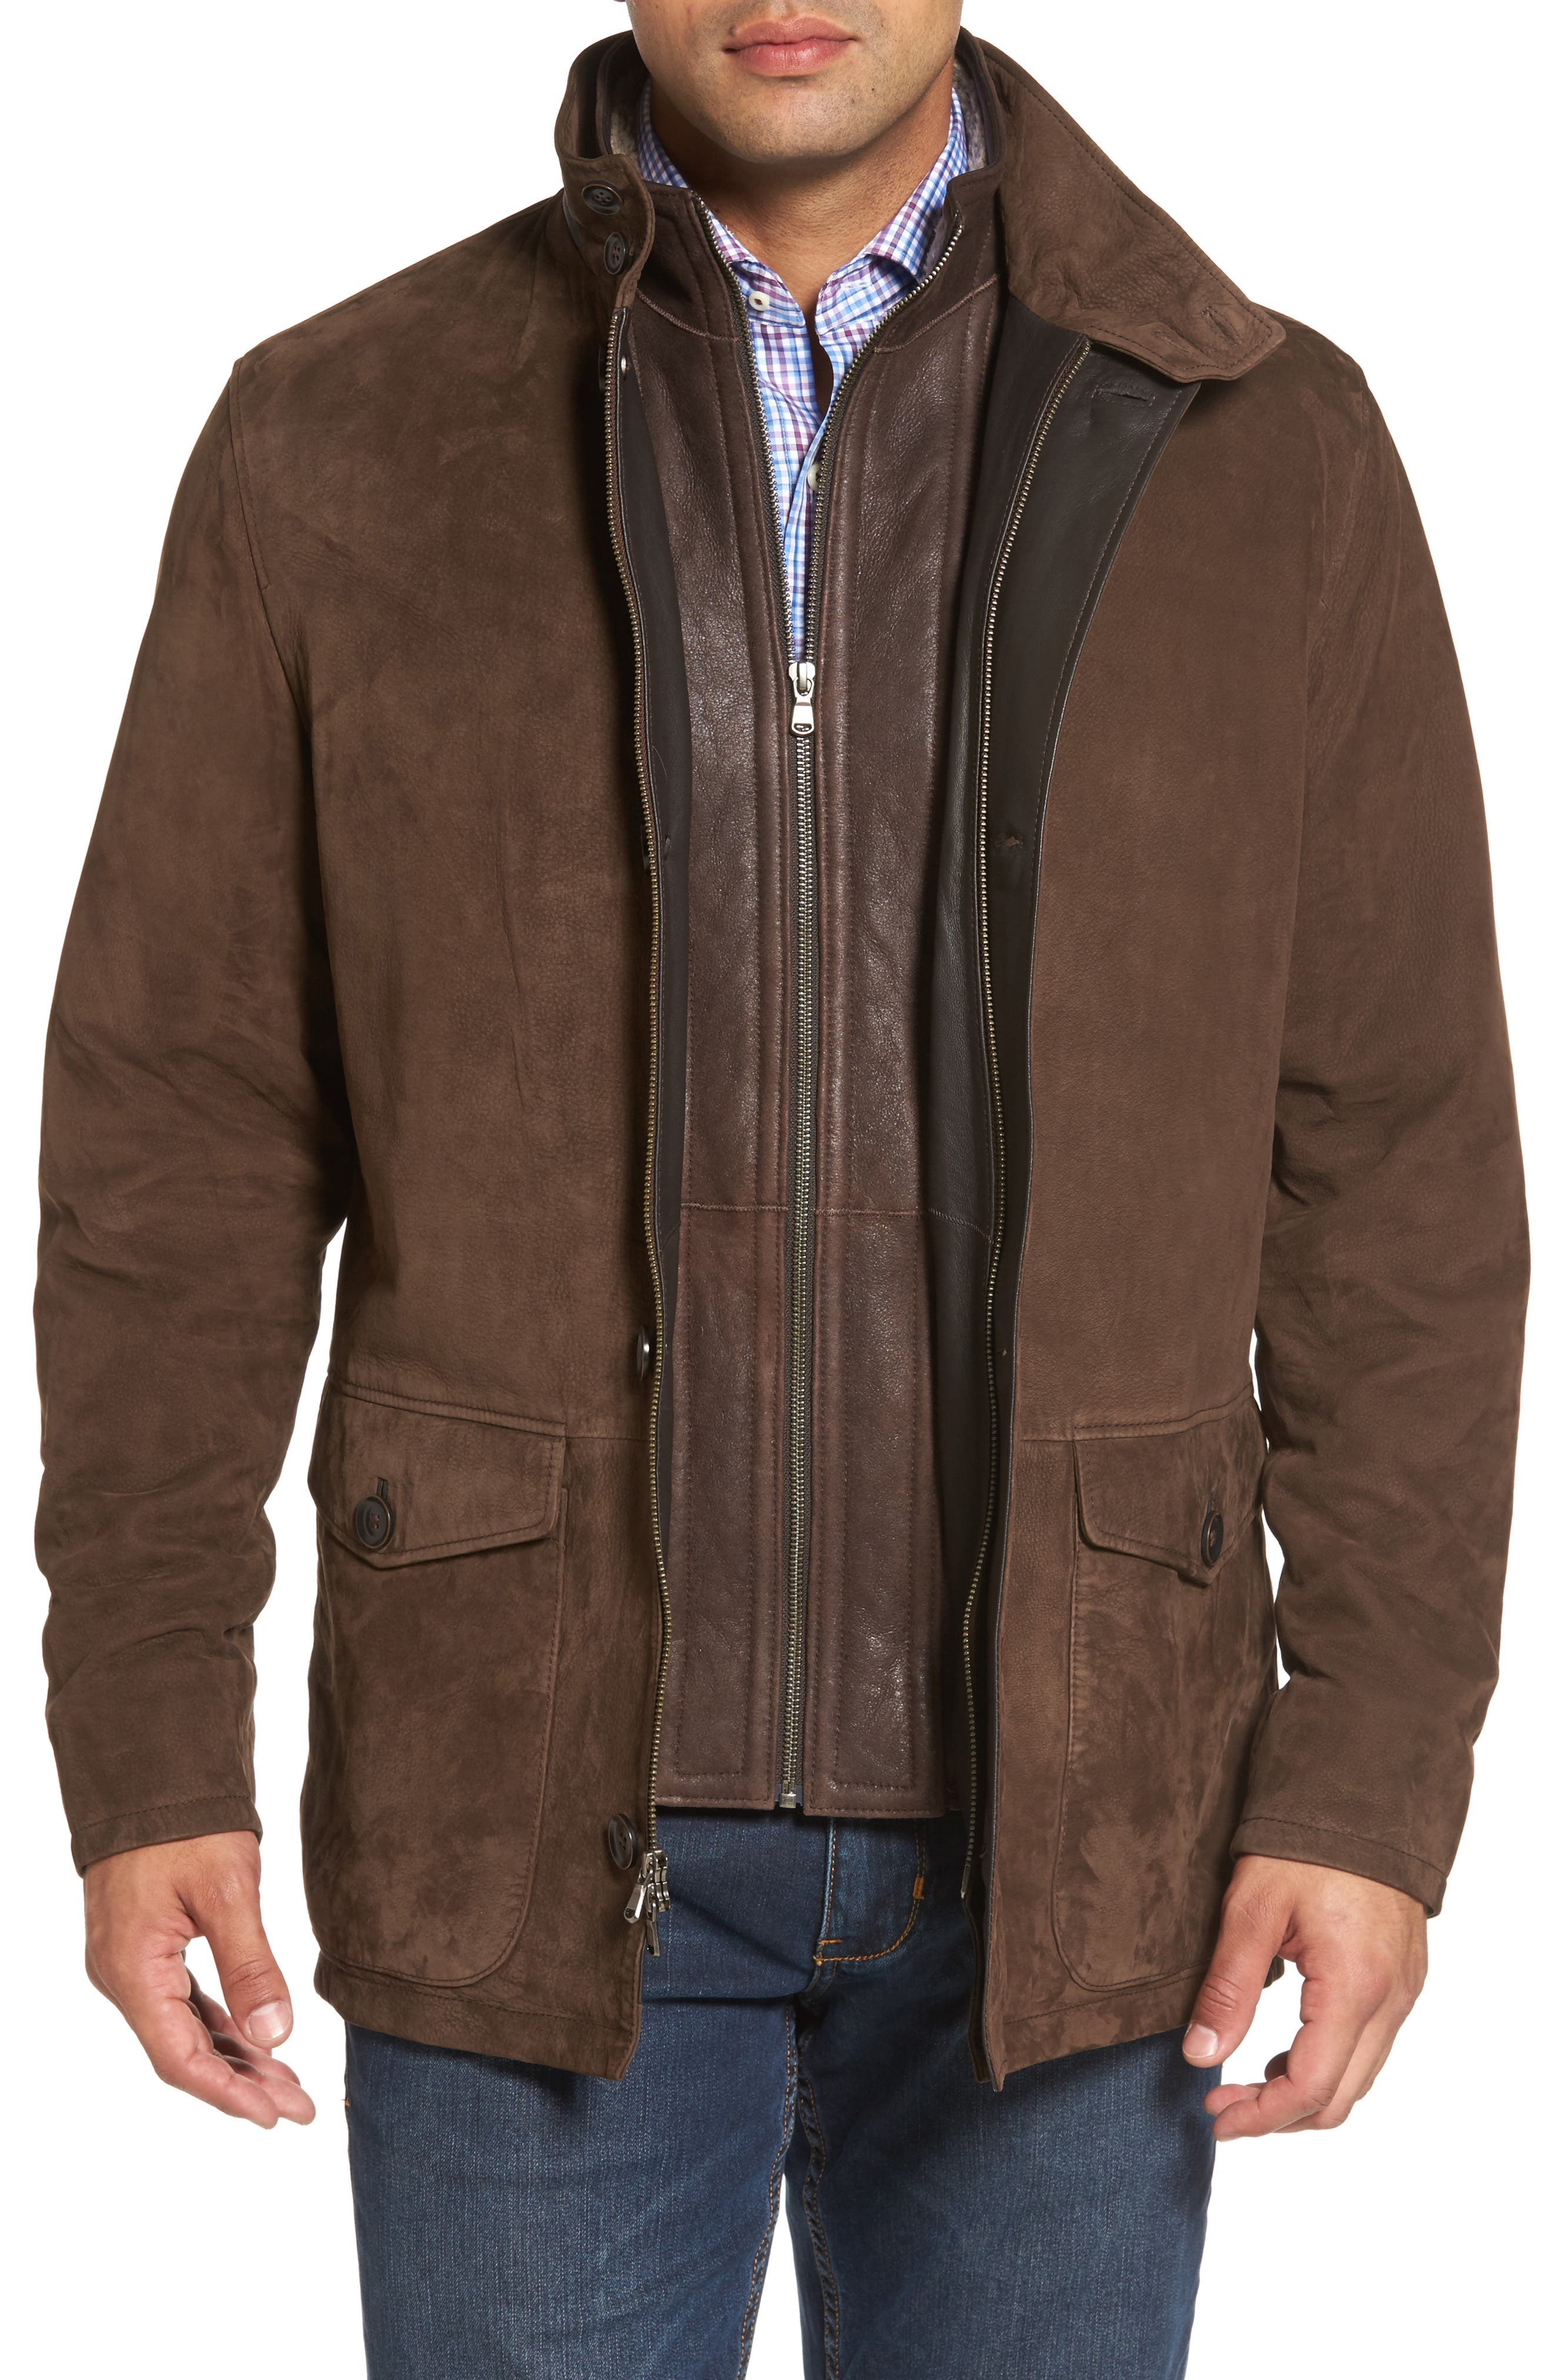 Steamboat Leather Jacket with Genuine Shearling Lined Bib,                             Main thumbnail 1, color,                             227